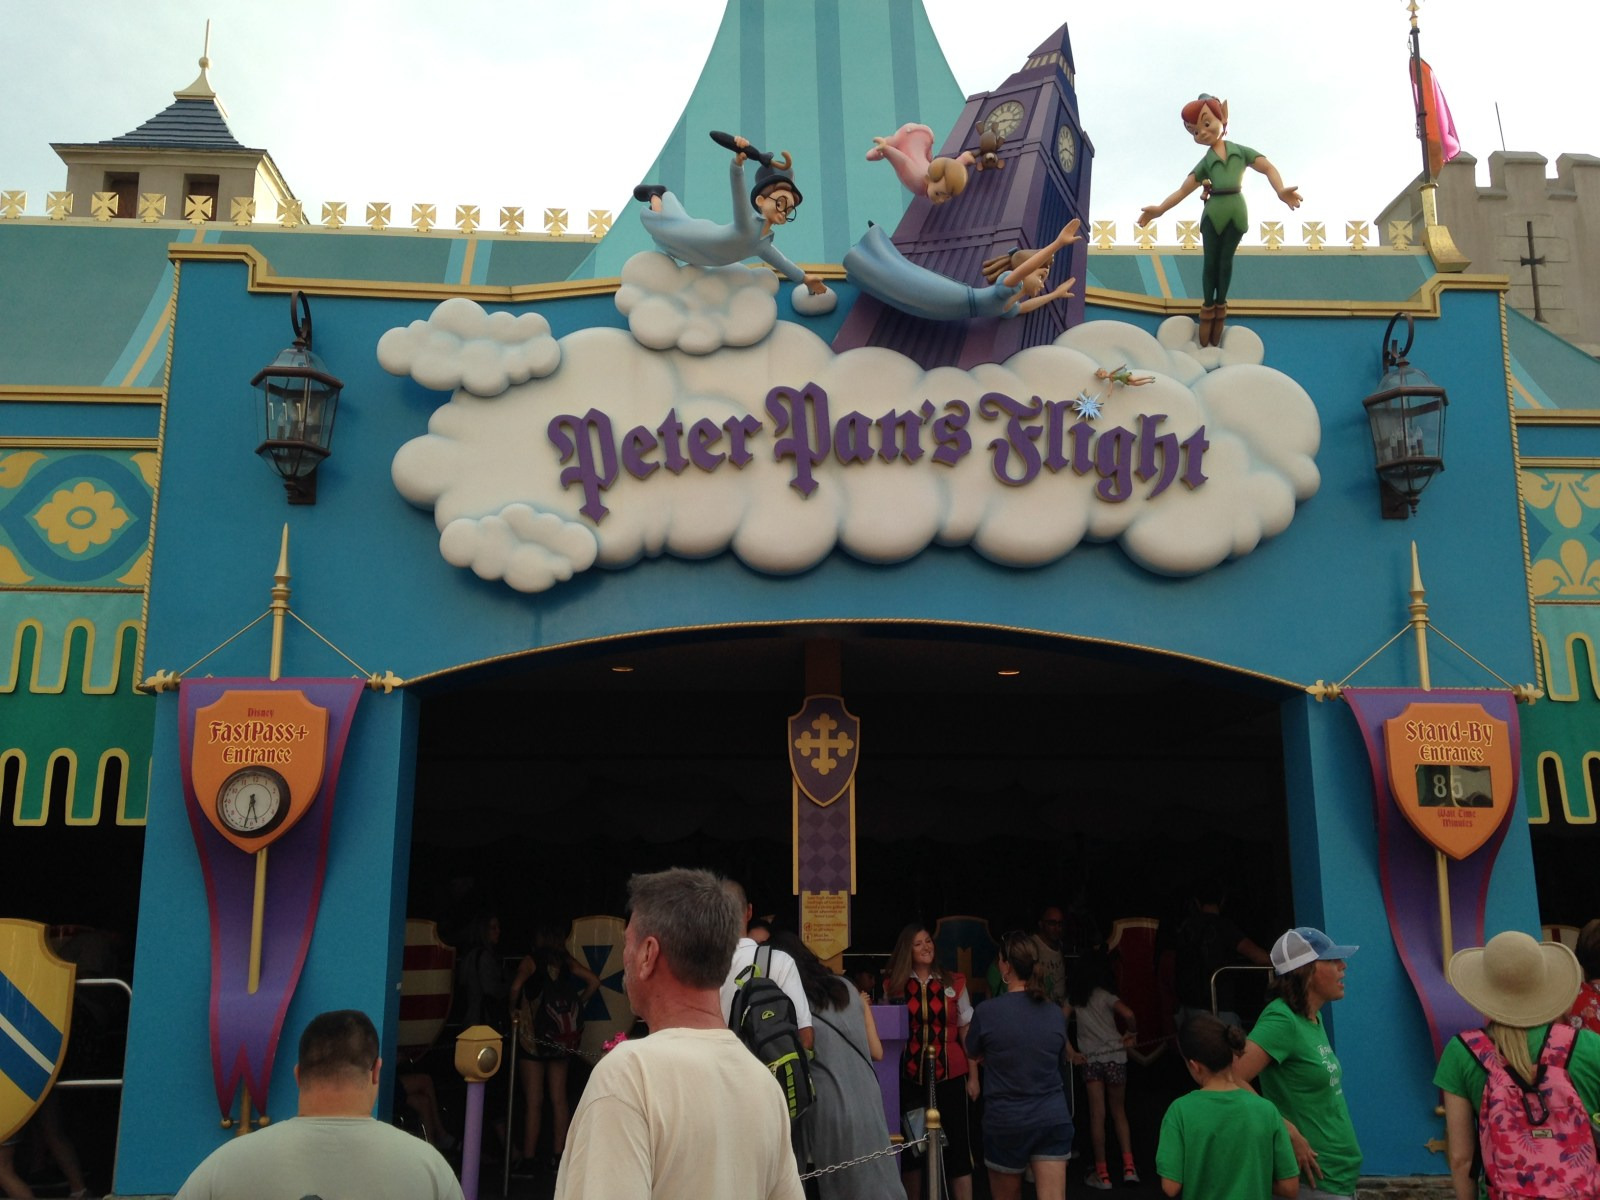 Peter Pan's Flight at Magic Kingdom